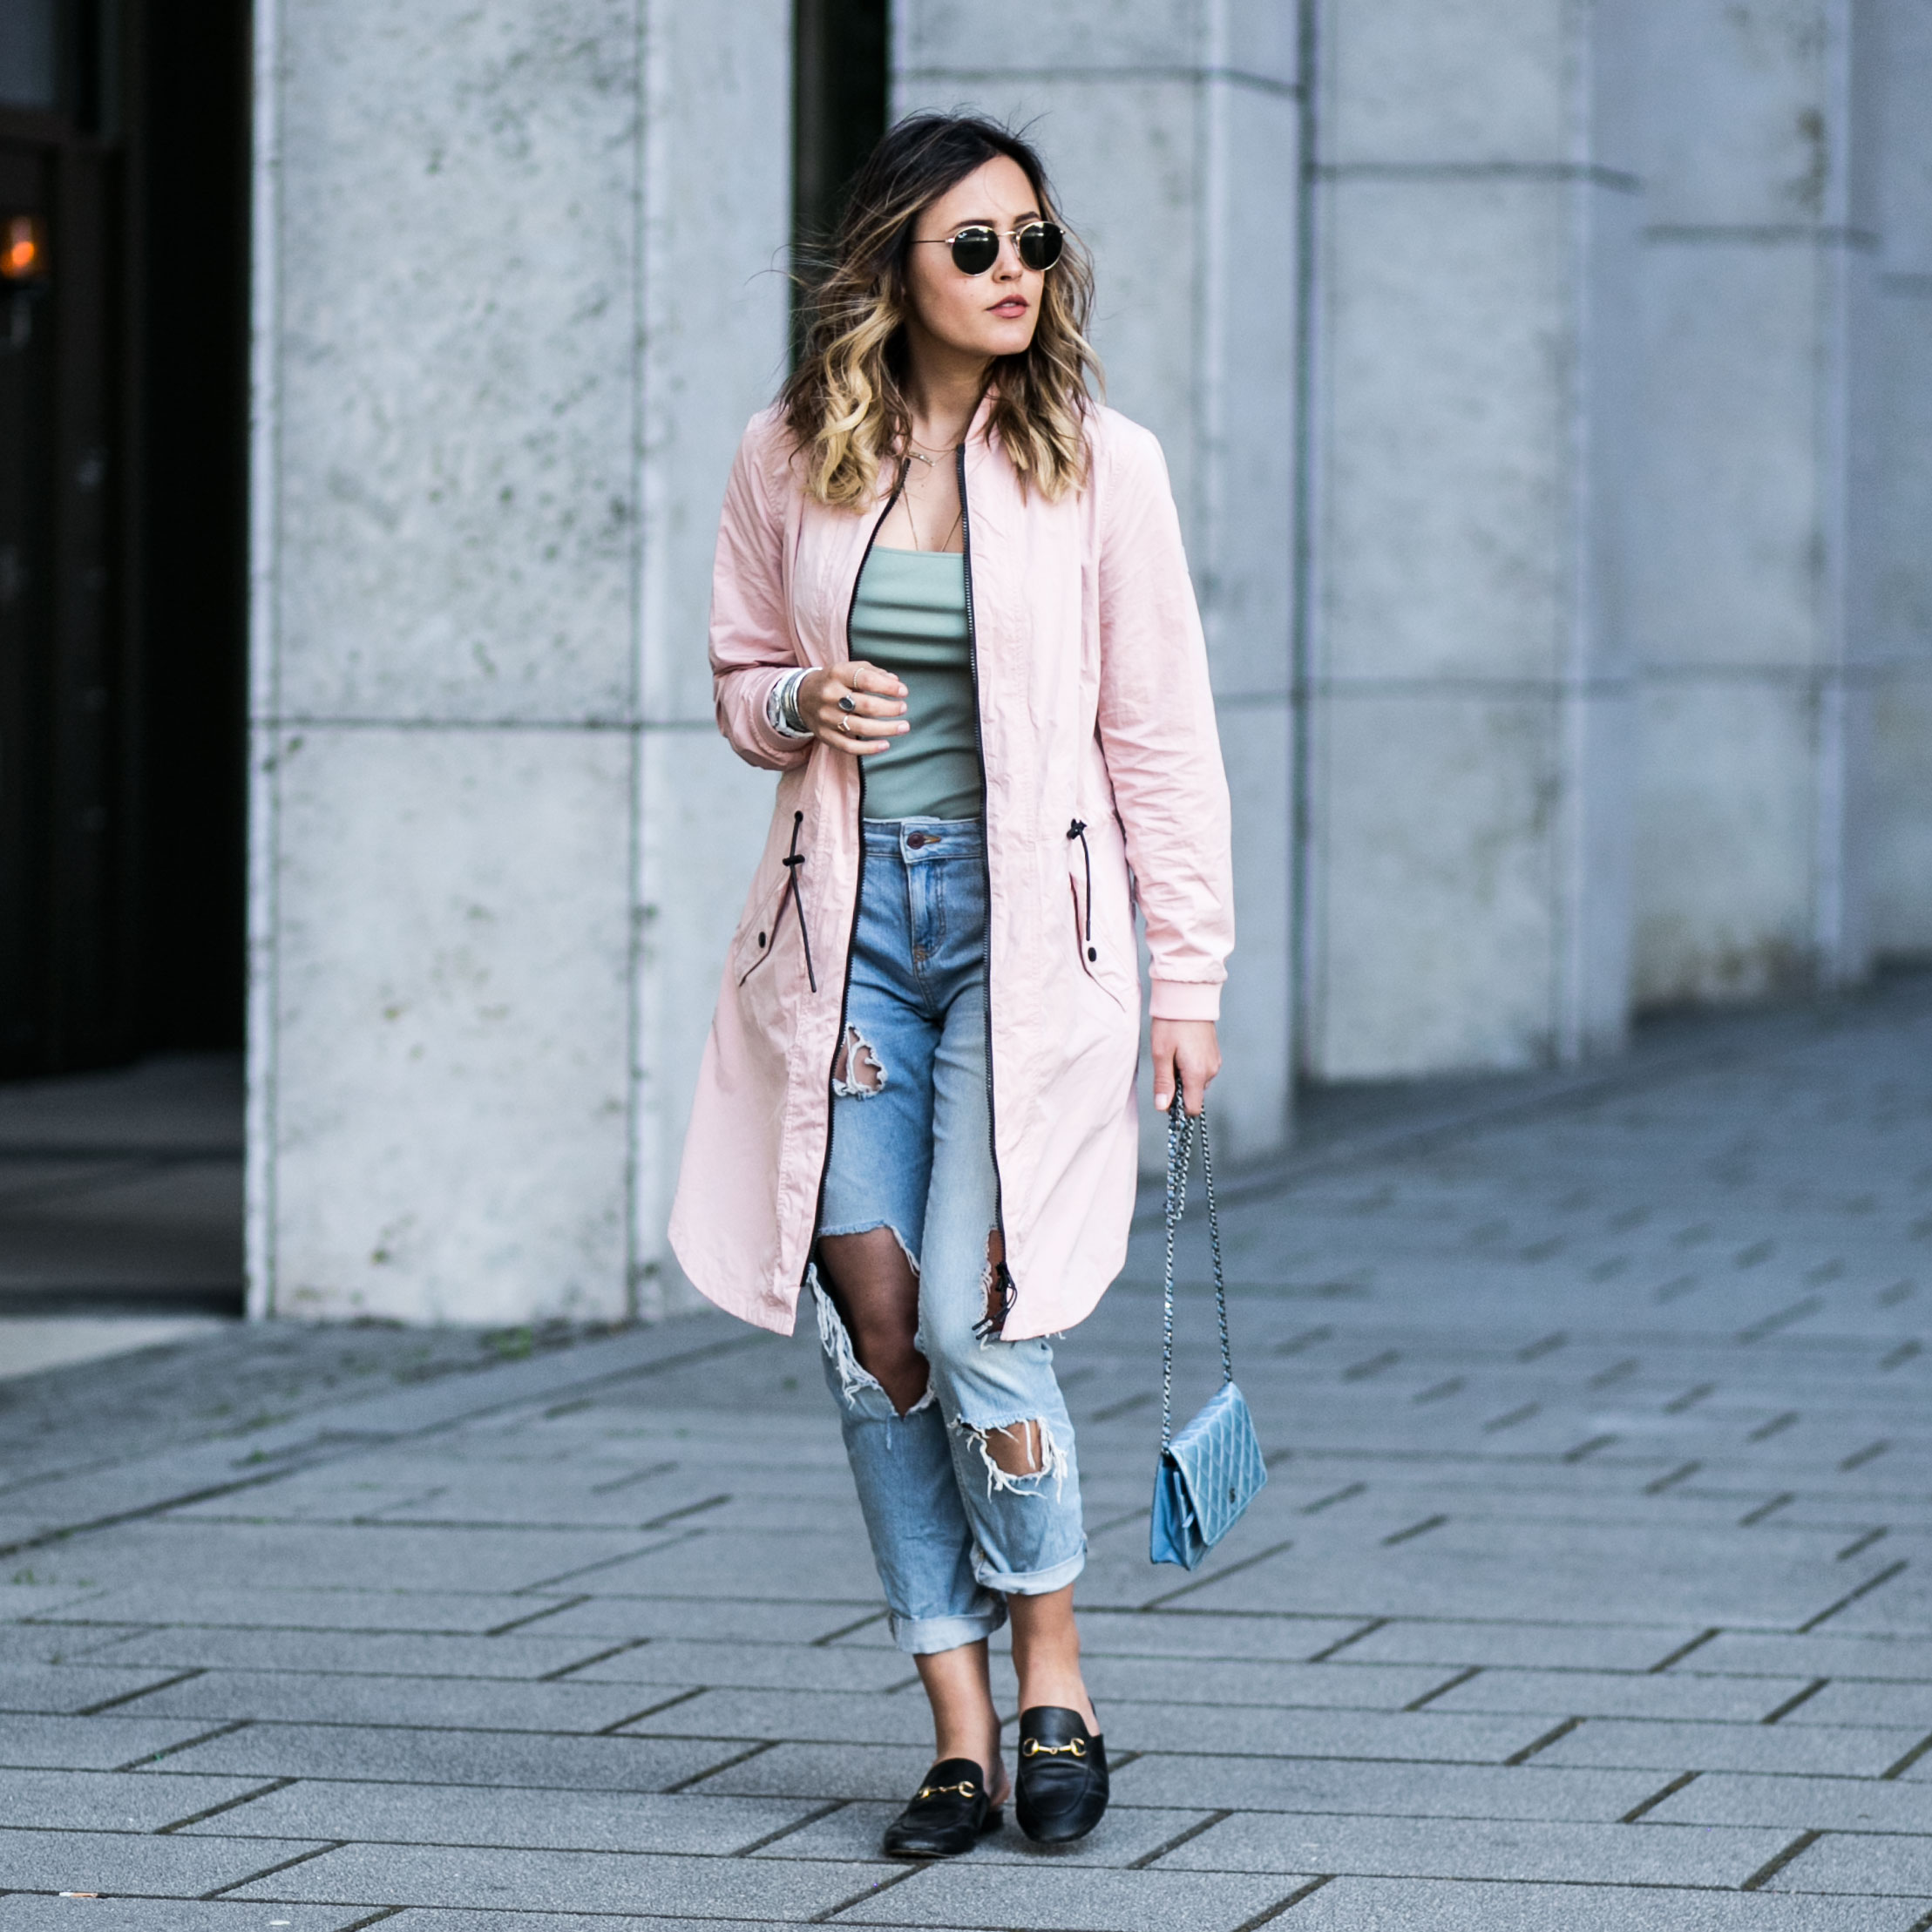 Rosa Trenchcoat, Ripped Jeans, Gucci Mules